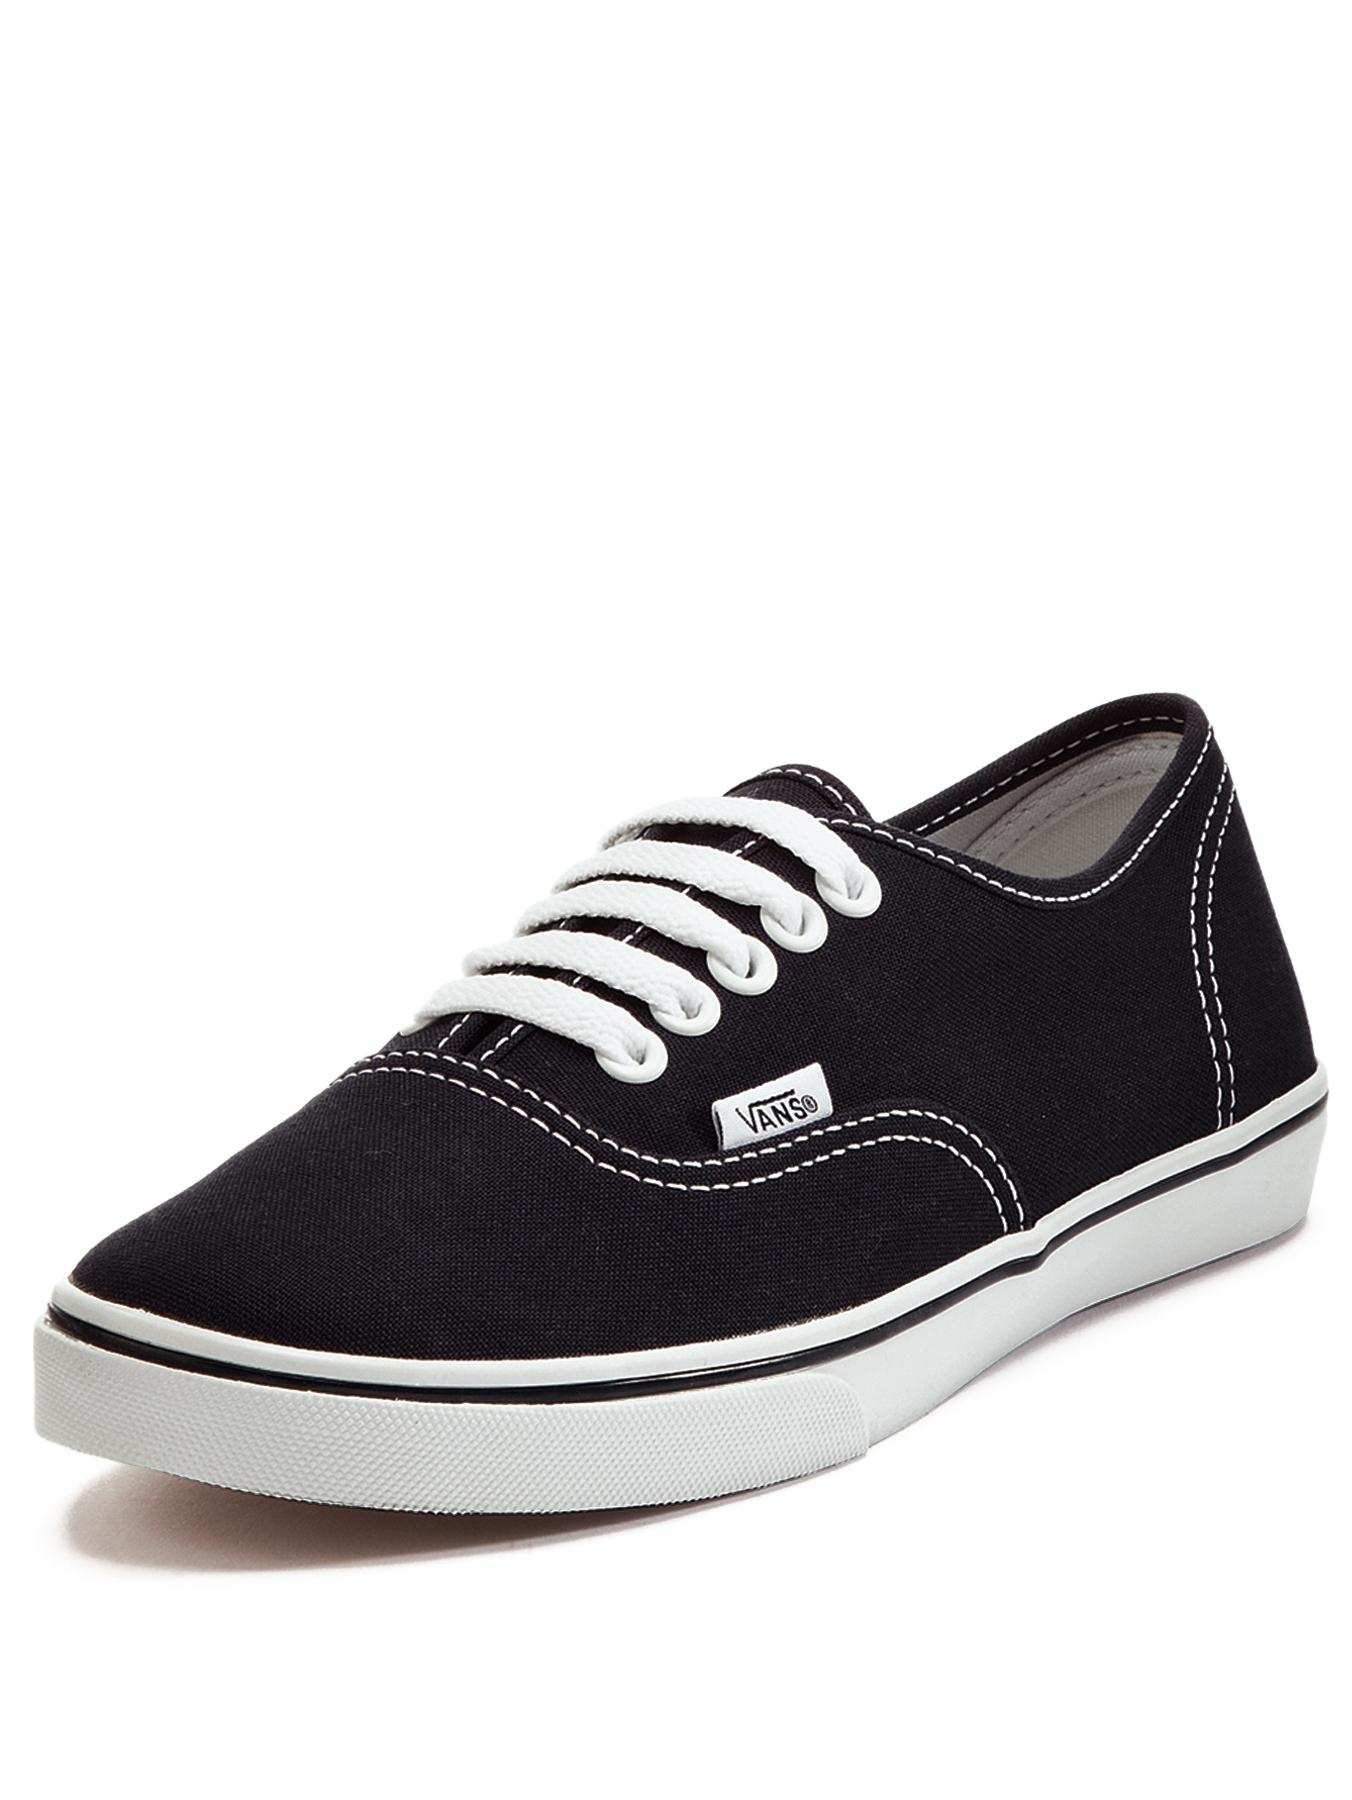 Authentic Lo Pro Plimsolls, Black